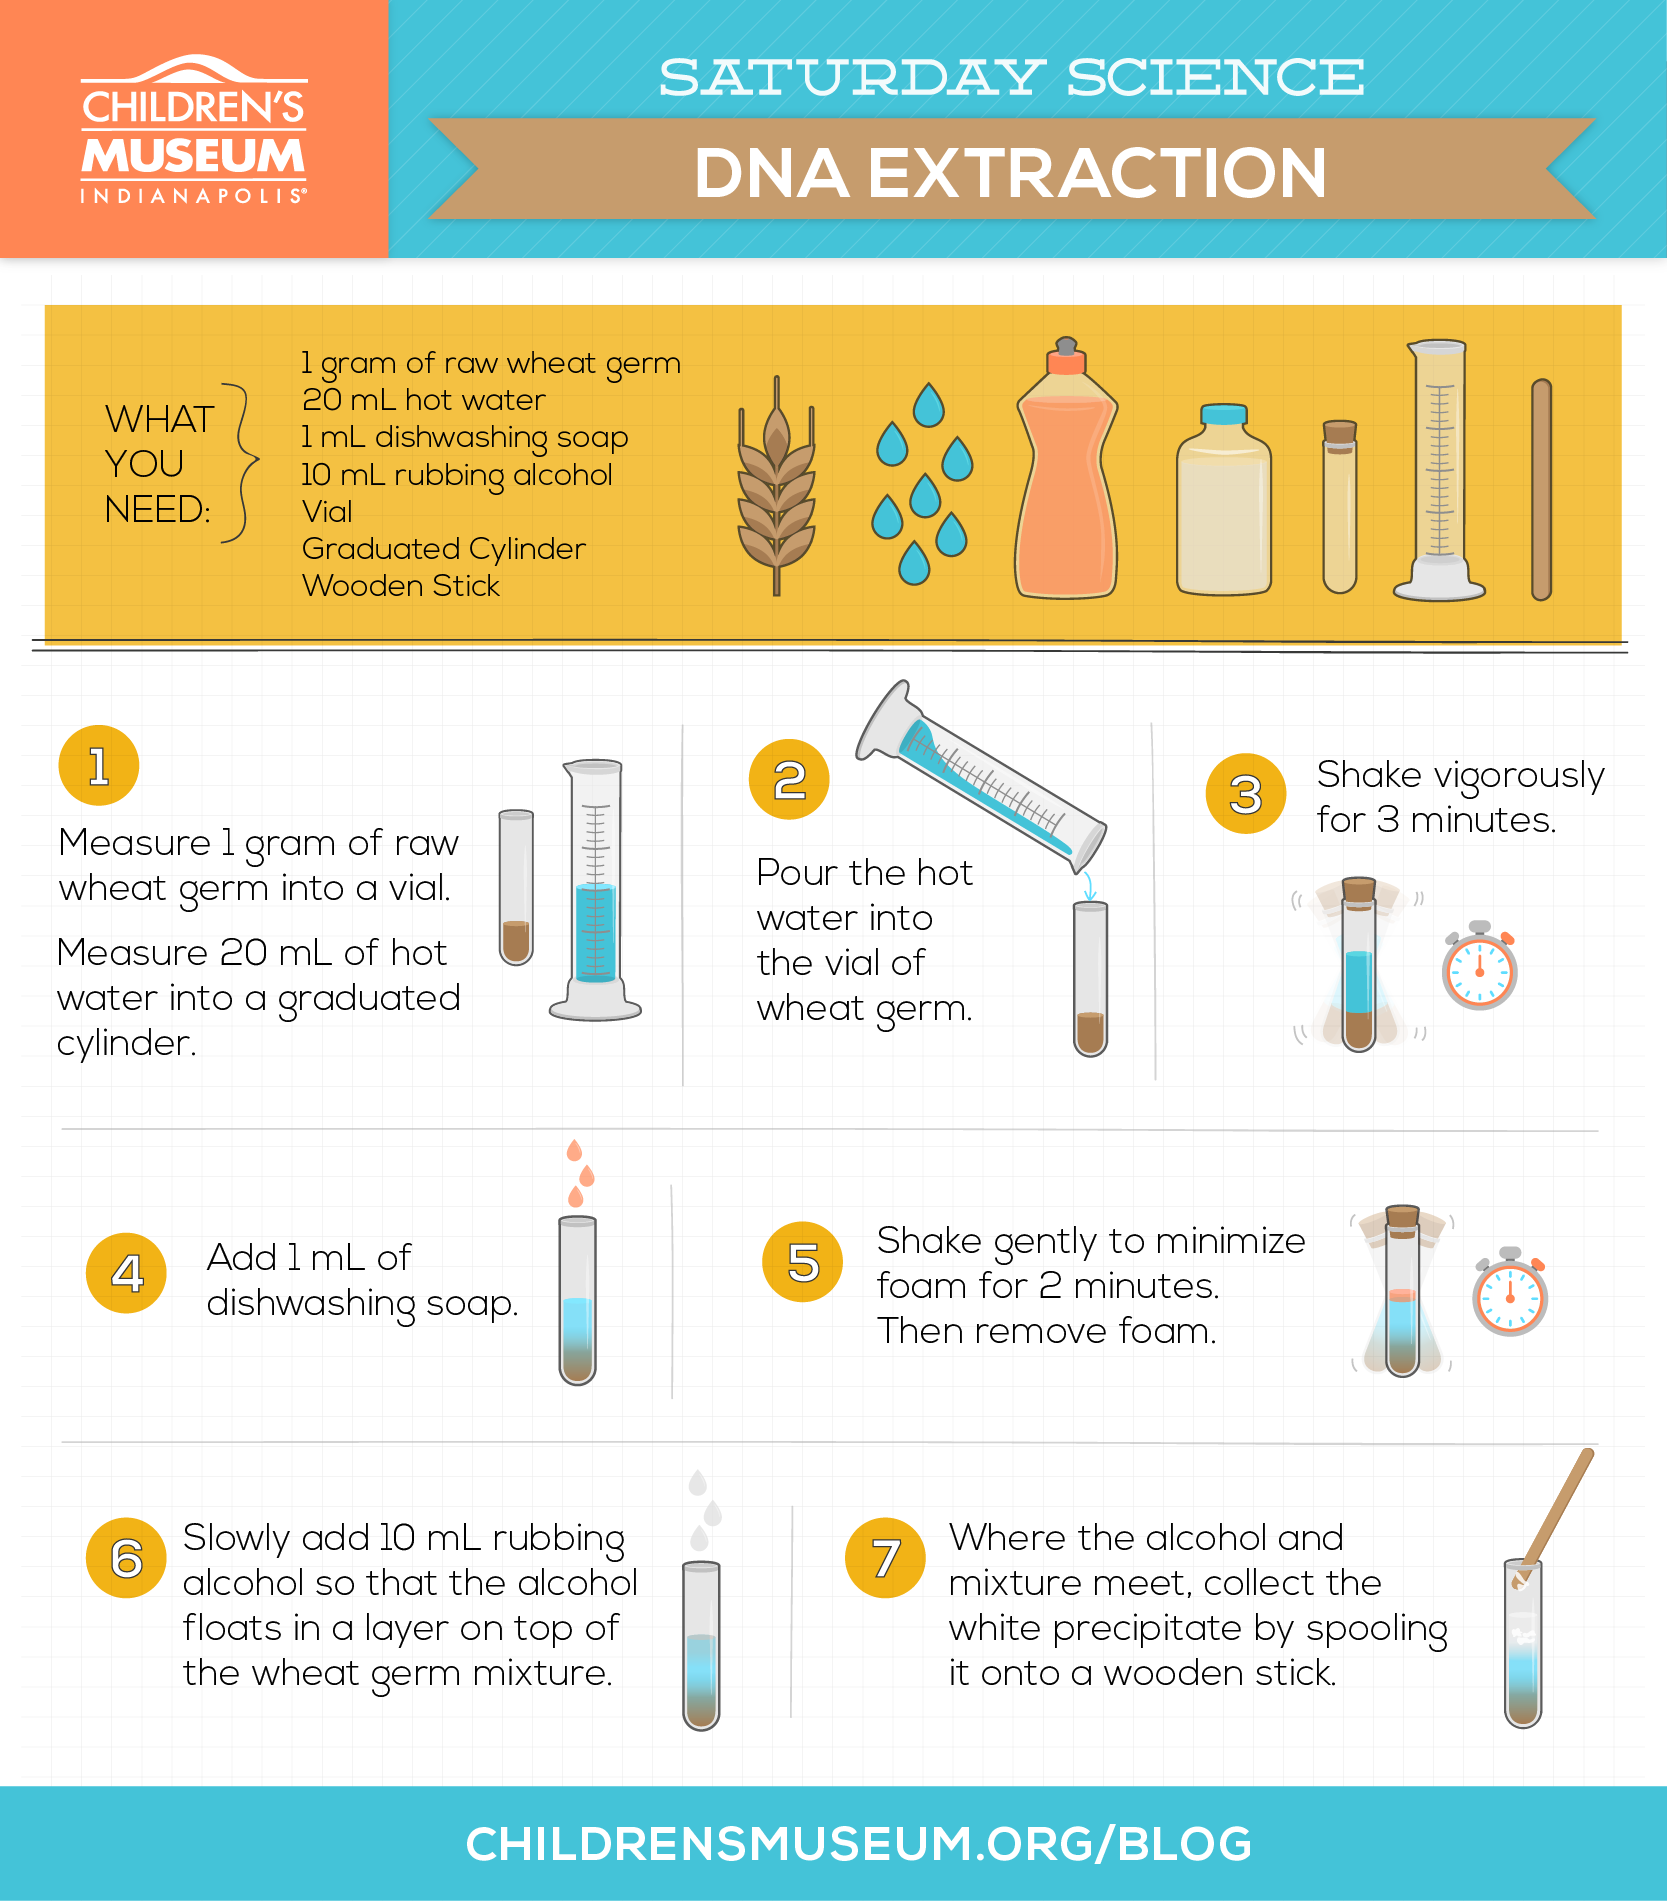 Saturday Science Dna Extraction From Wheat Germ